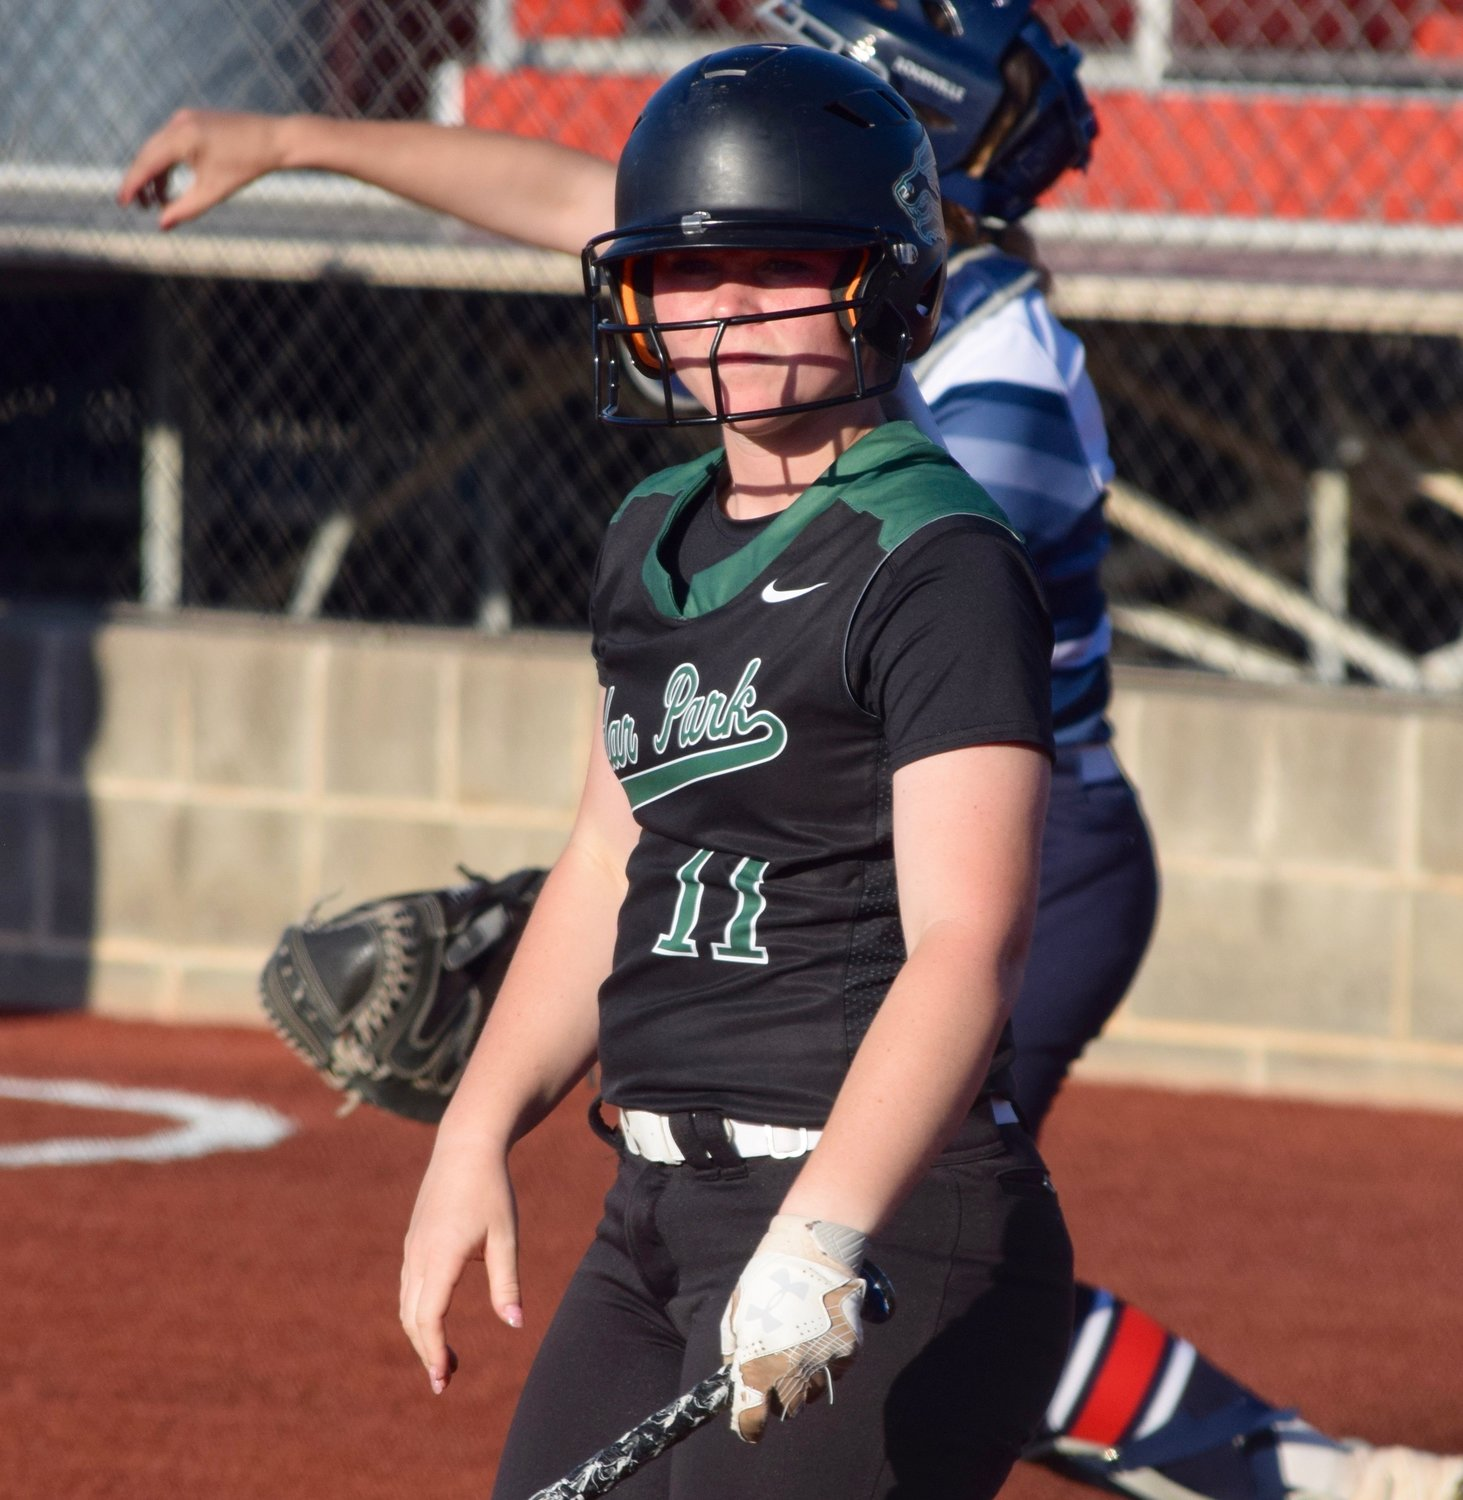 Cedar Park senior Kaleigh Ham was the District 17-5A Offensive Player of the Year, helping the Lady Timberwolves make it to the first round of the playoffs.